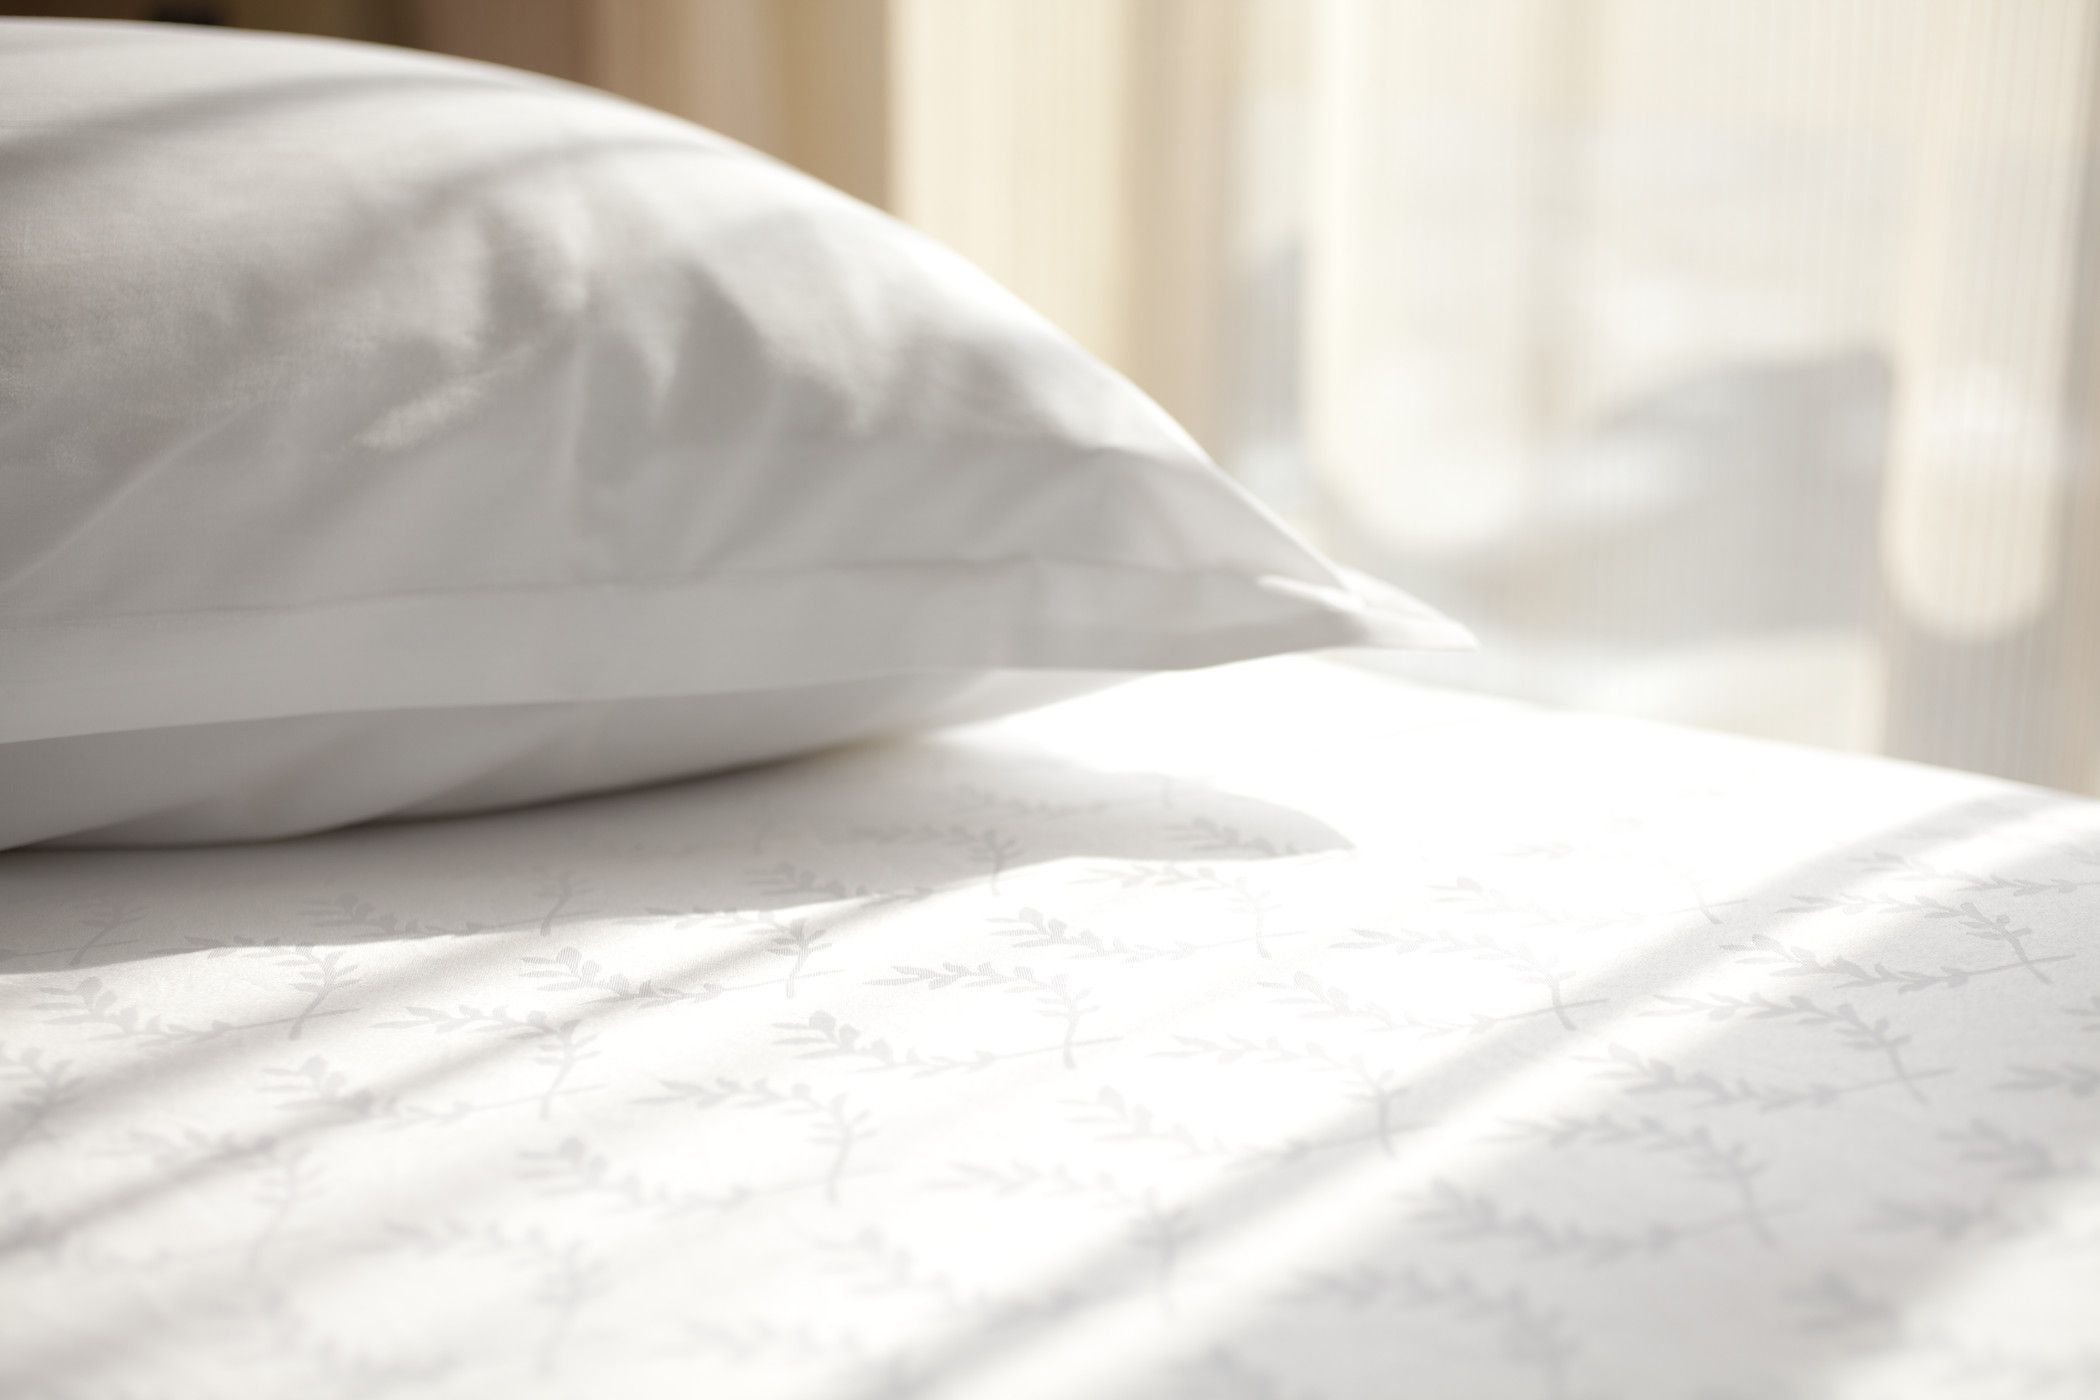 Crisp white linen of a hotel bed and pillow